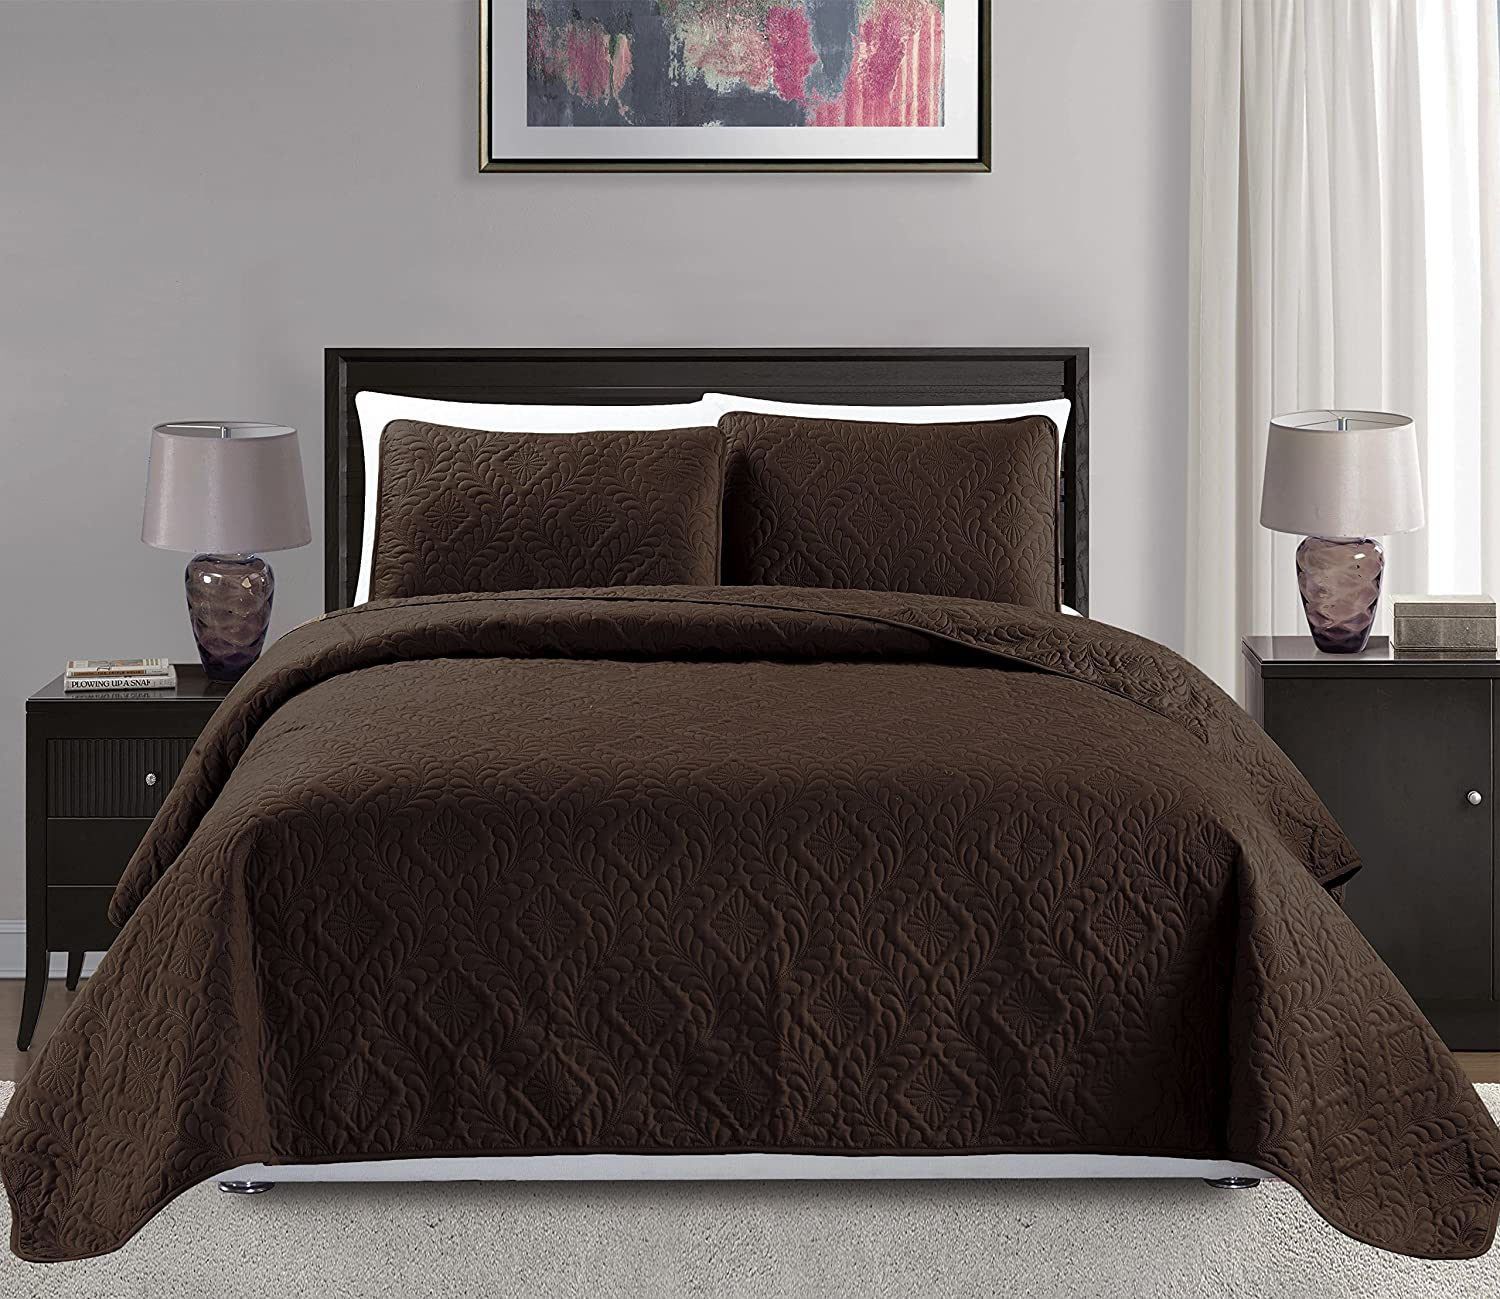 Mk Collection 3pc Full/Queen Over Size Diamond Bedspread Bed Cover Embossed Solid Brown/Chocolate New